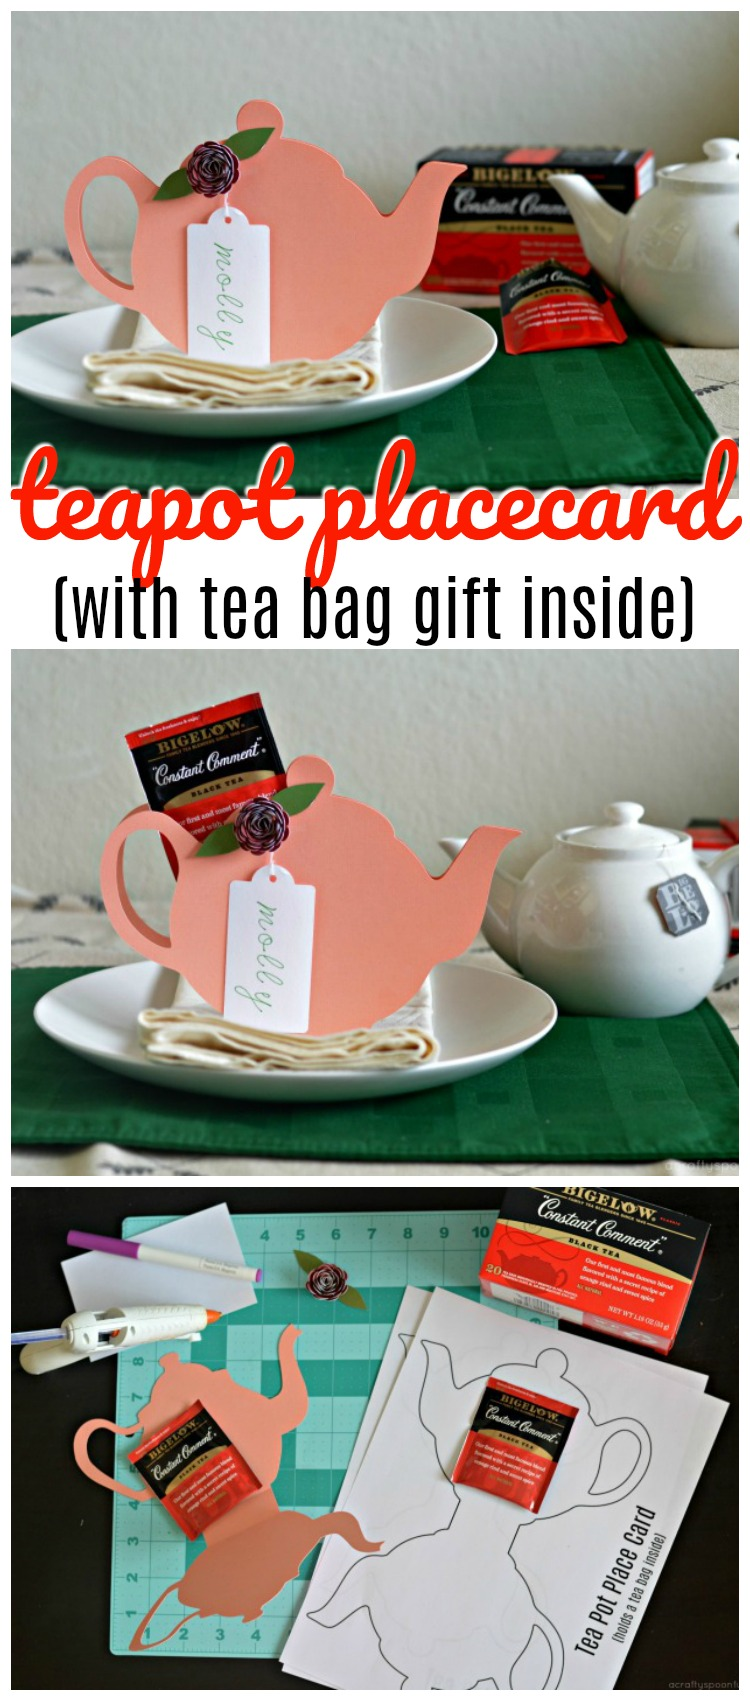 Looking for fun tea party theme ideas? This tea pot place card printable is the perfect way to decorate a table for a special tea! AD